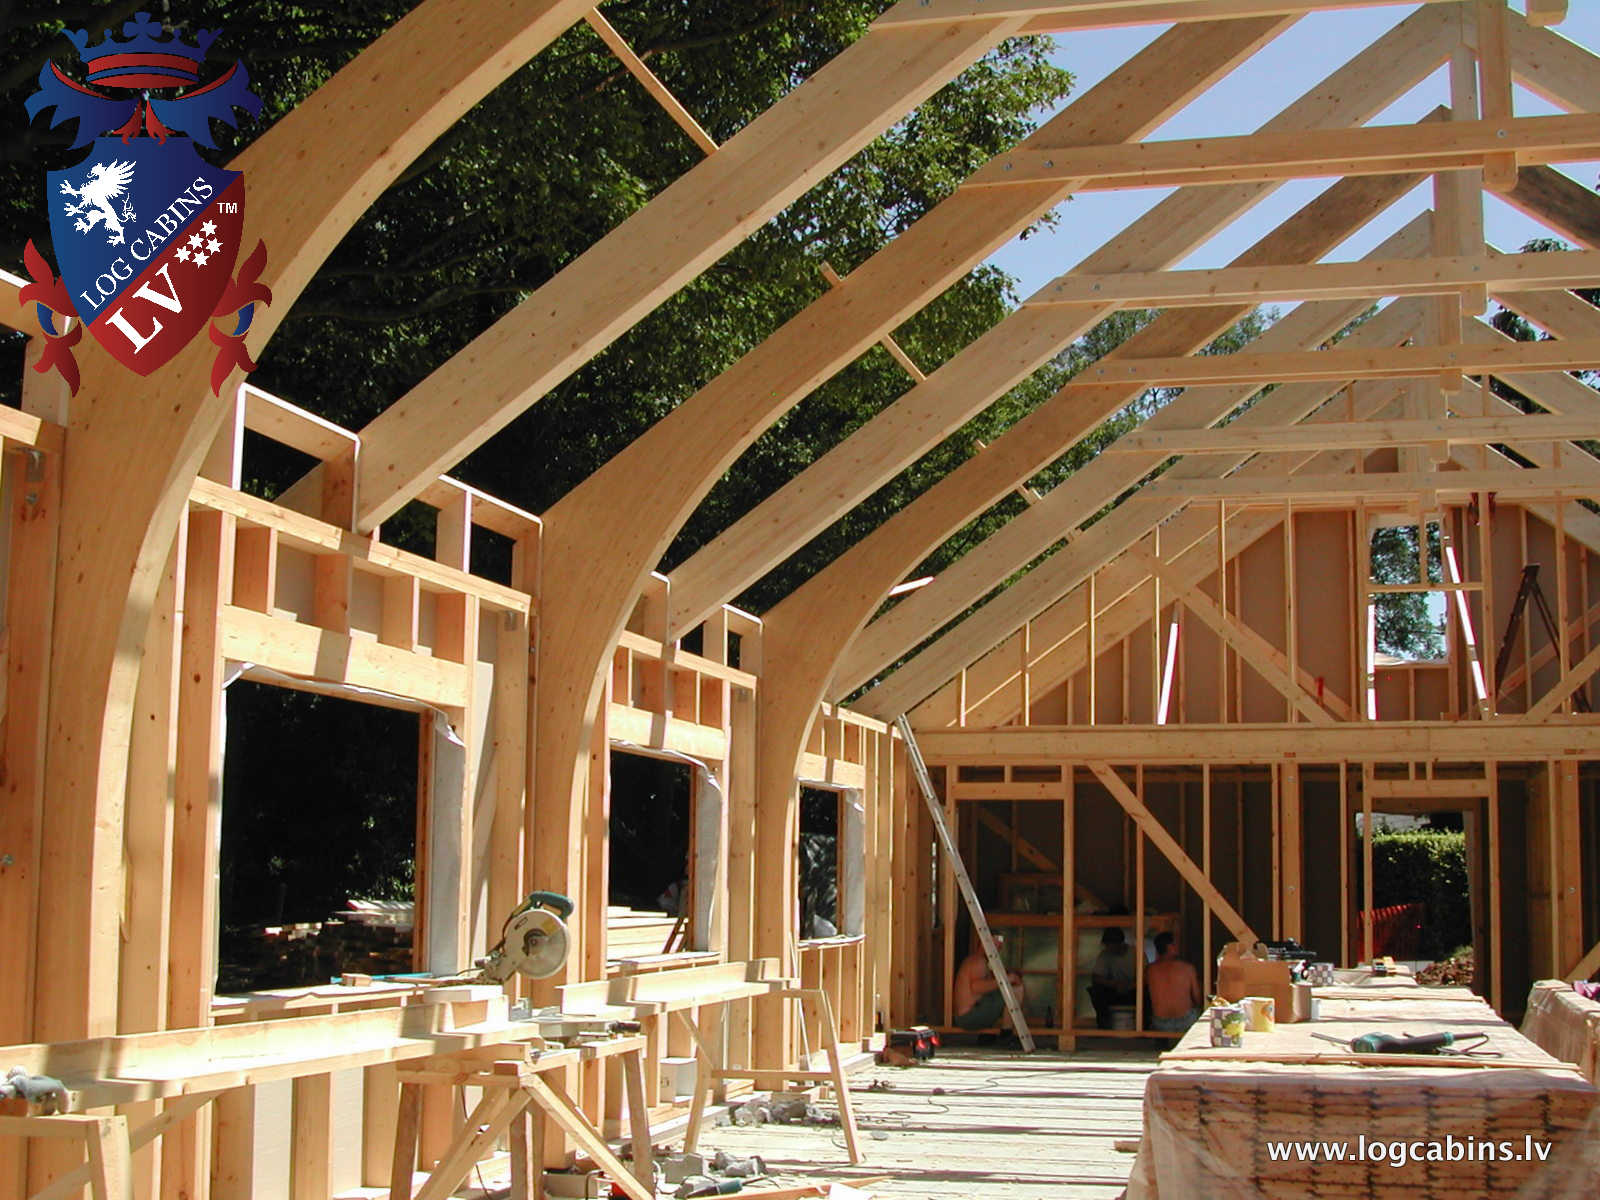 Log Cabins VS Timber Frame - Log Cabins LV Blog